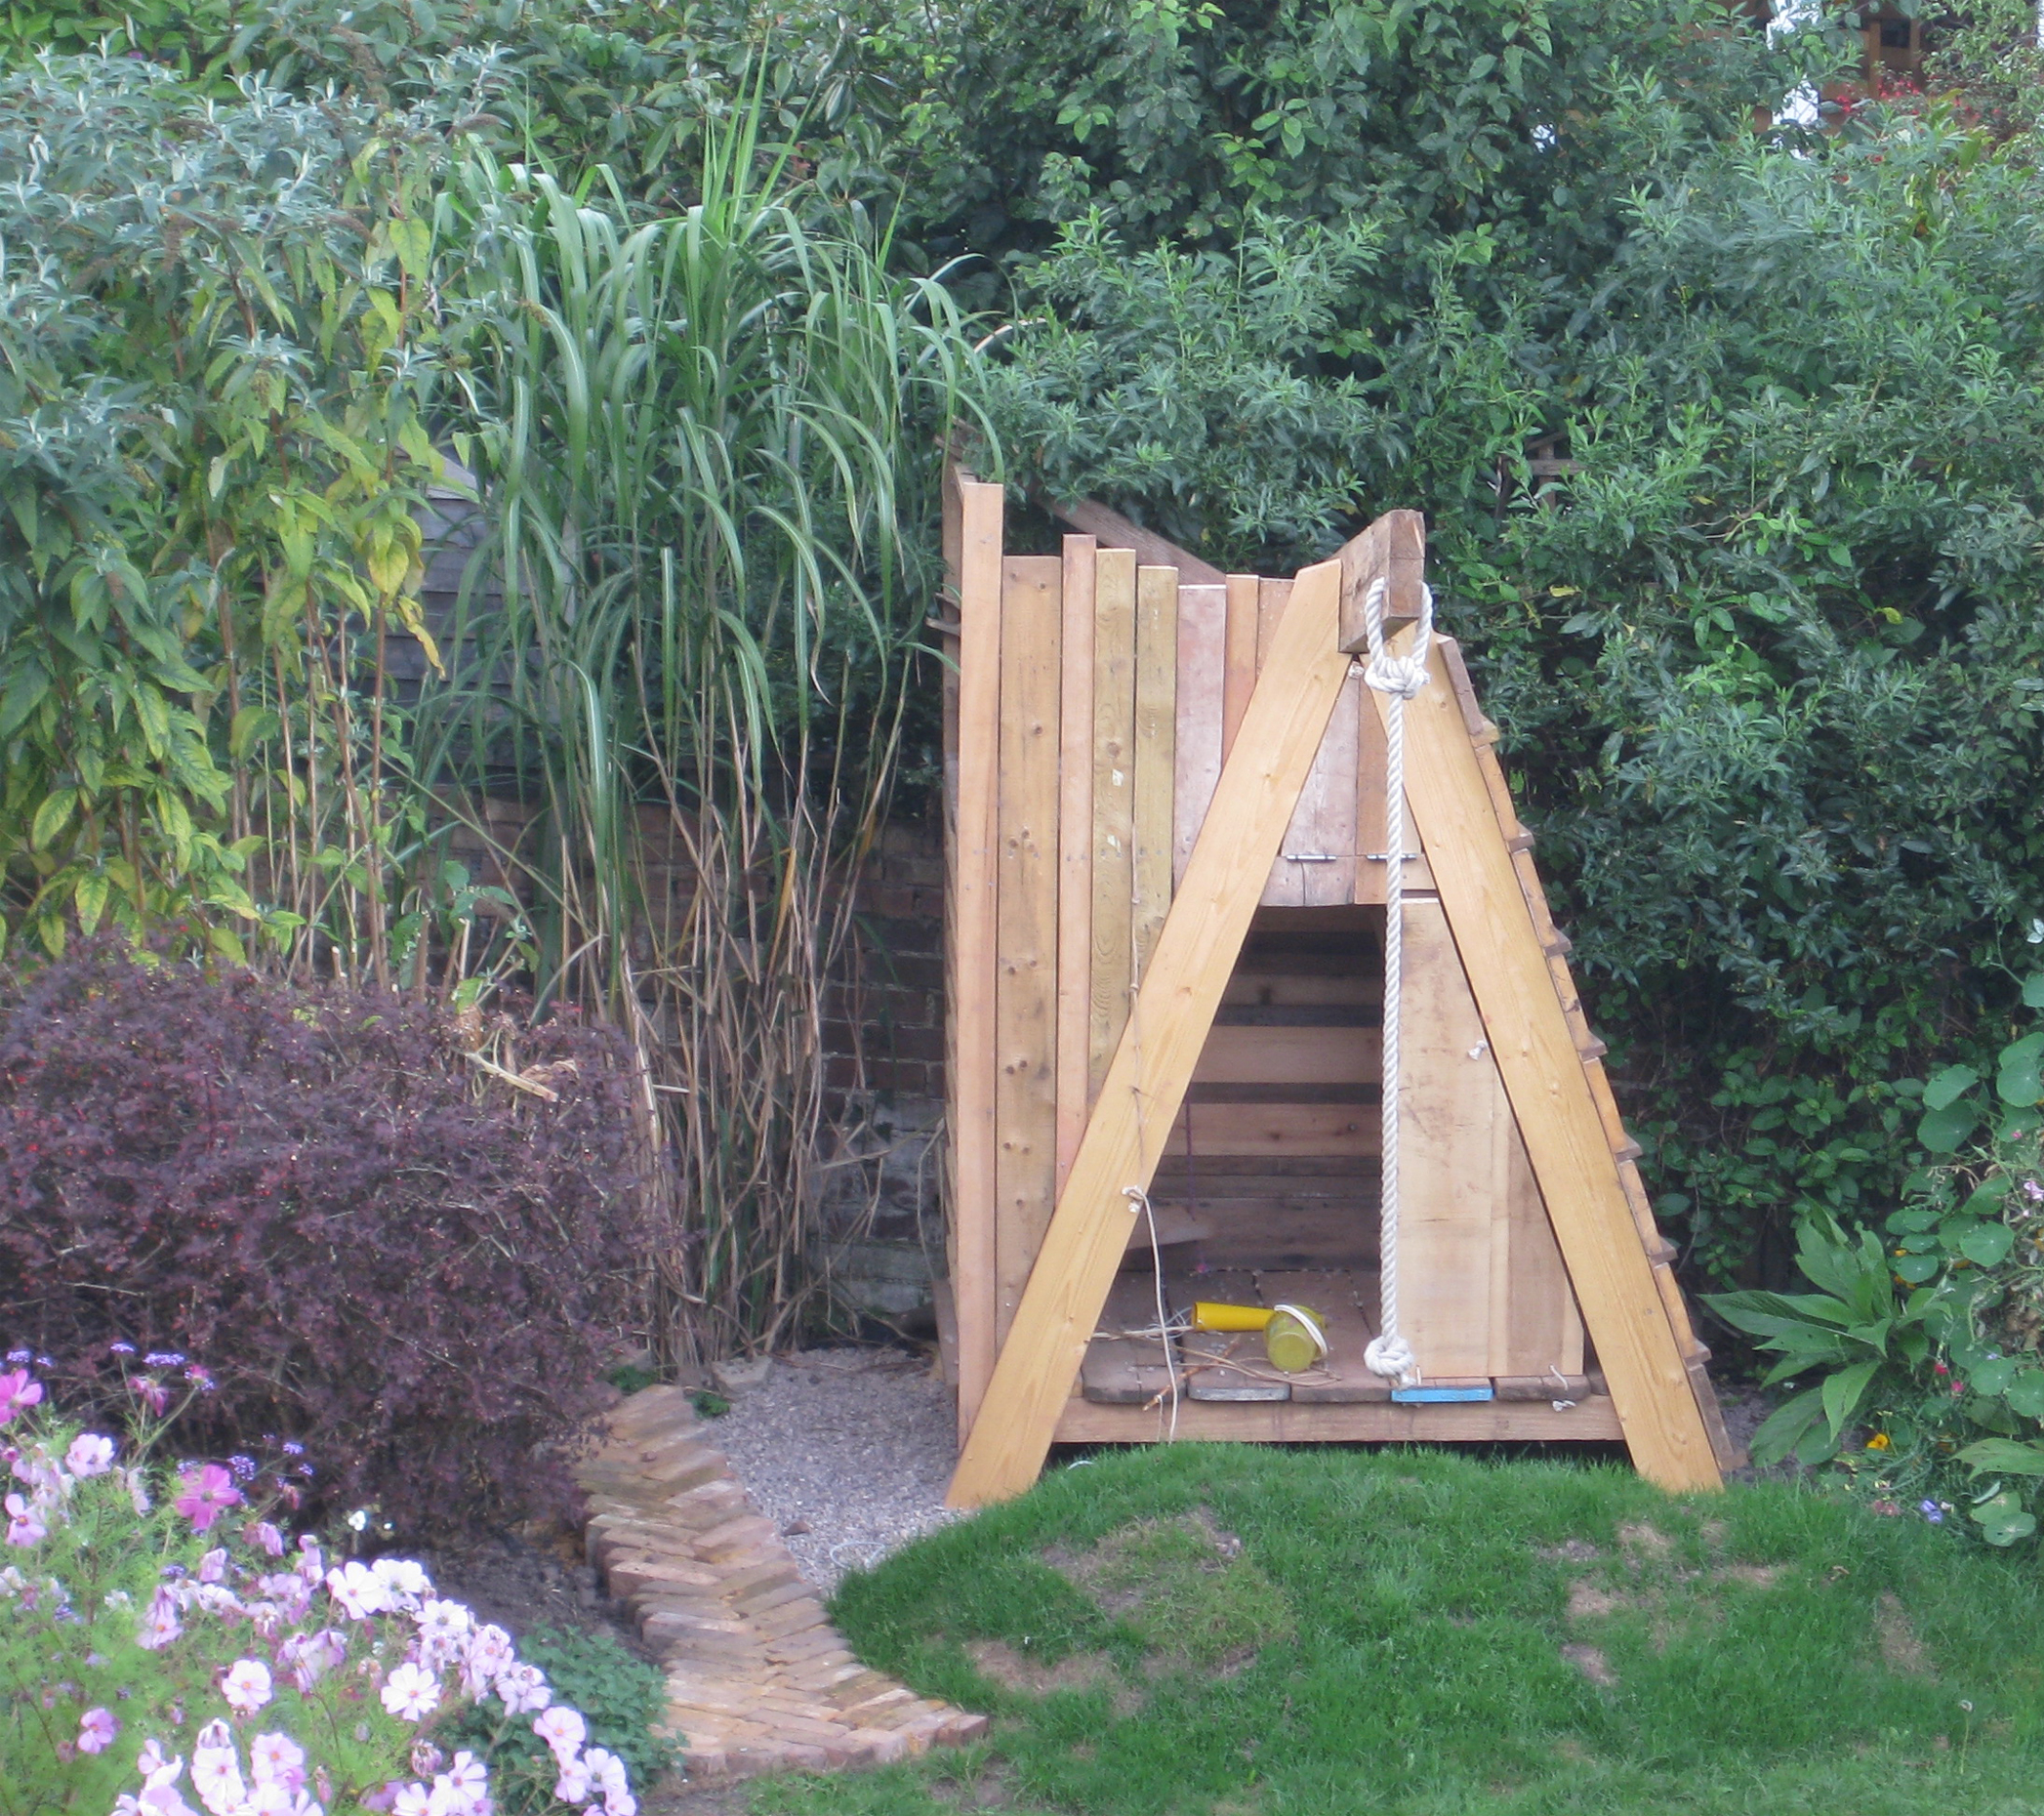 Childrens garden play structure, climbing frame, swing, fort and inner room with drawbridge.